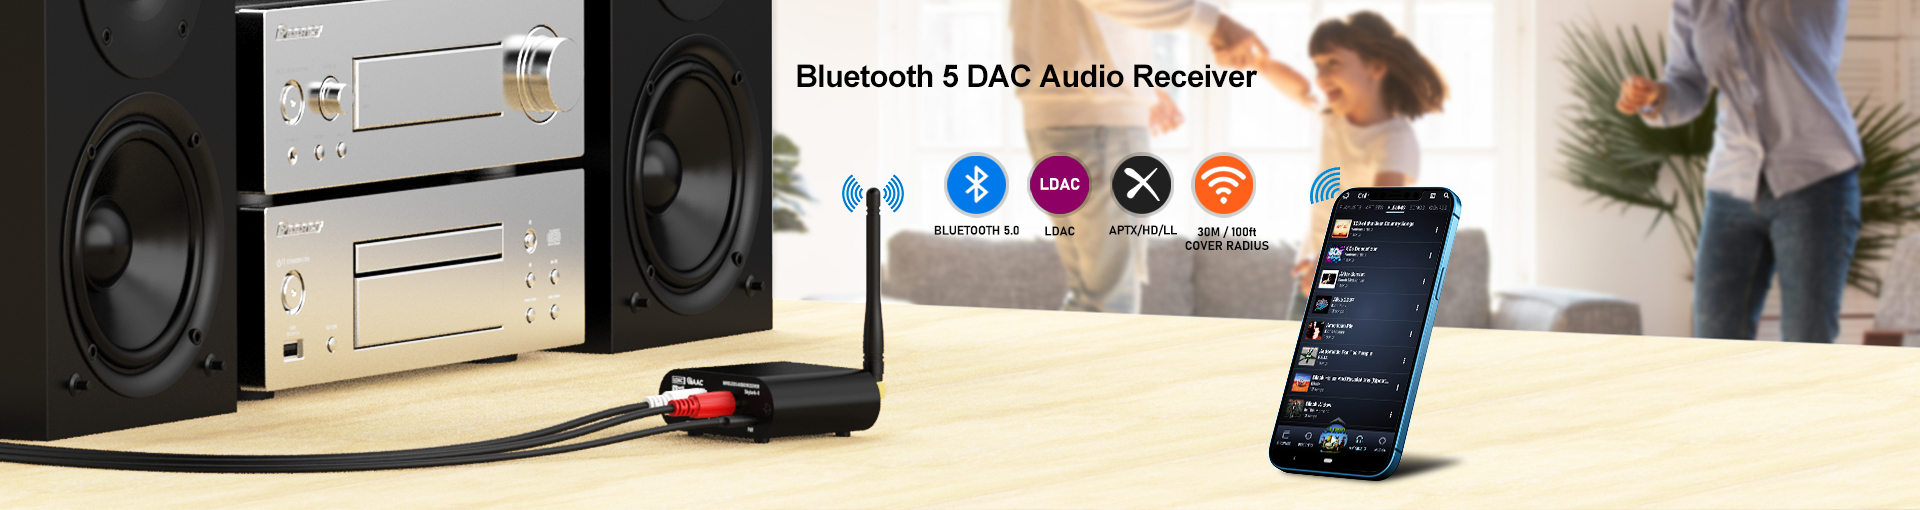 Bluetooth_Audio_Receiver_Home_Stereo